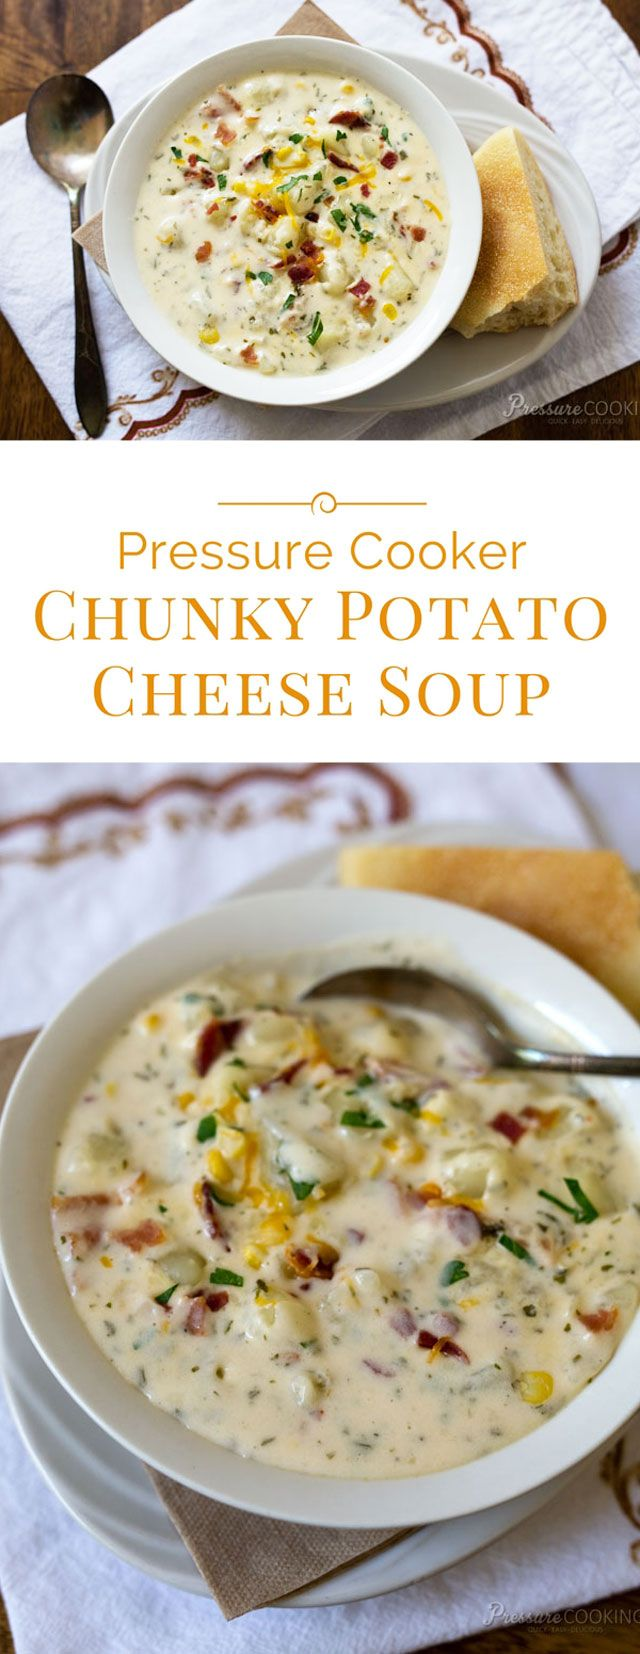 Creamy Pressure Cooker Potato Cheese Soup loaded with chunky potatoes, bacon, corn and two kinds of cheese. A hearty soup ready in just minutes in the pressure cooker.                                                                                                                                                                                 More